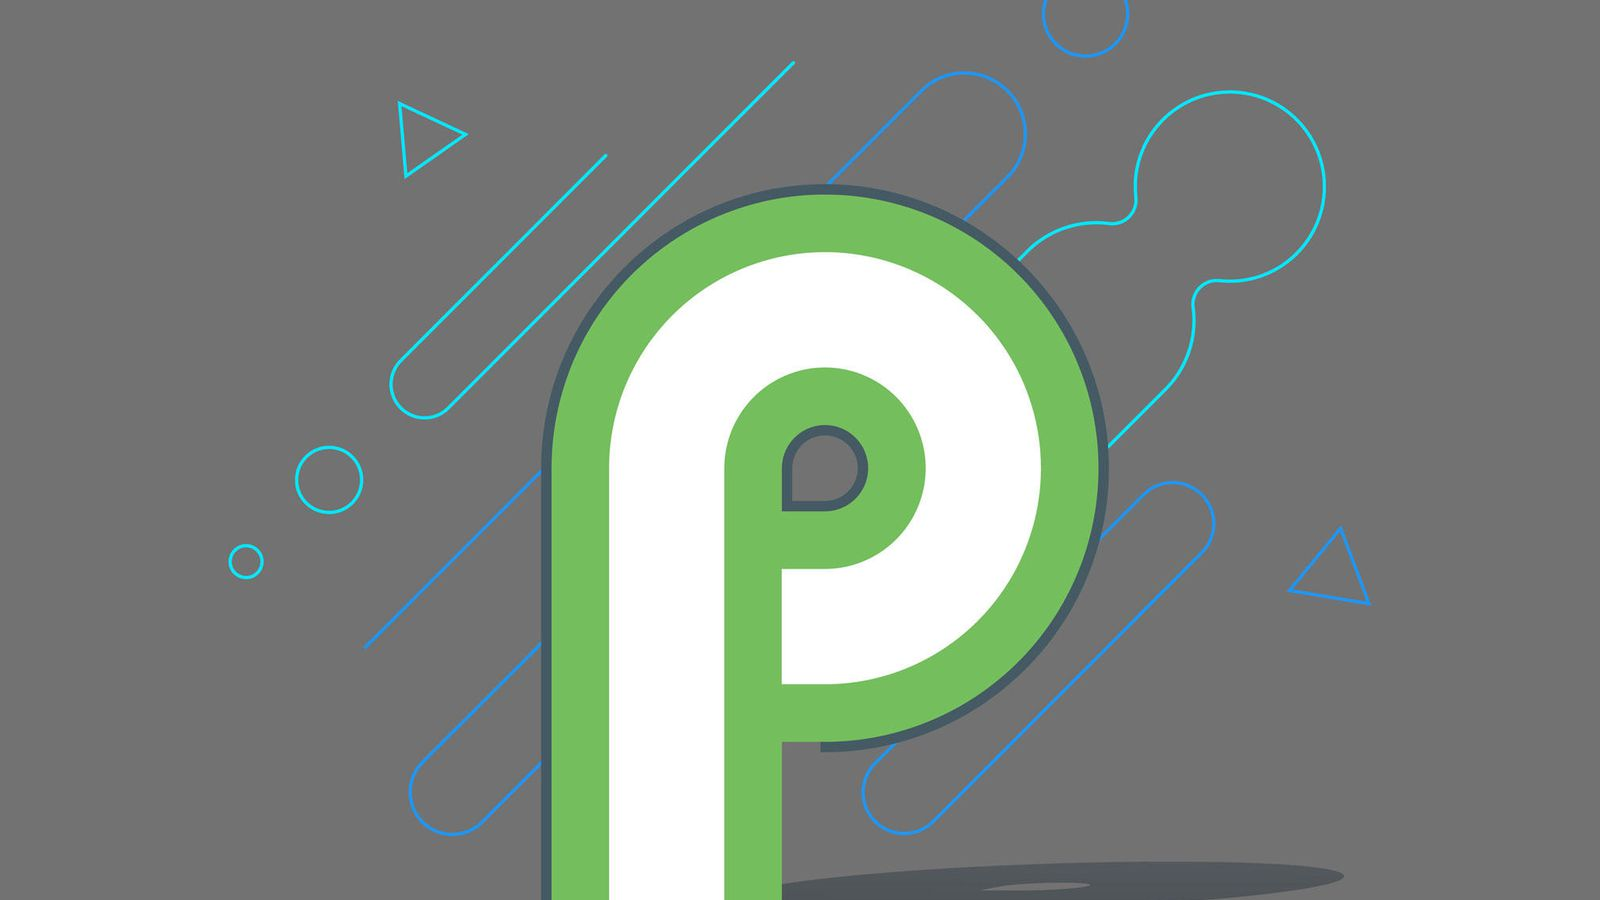 Android P für alle mit Android P-ify (Xposed) 1 techboys.de • smarte News, auf den Punkt! Android P für alle mit Android P-ify (Xposed)